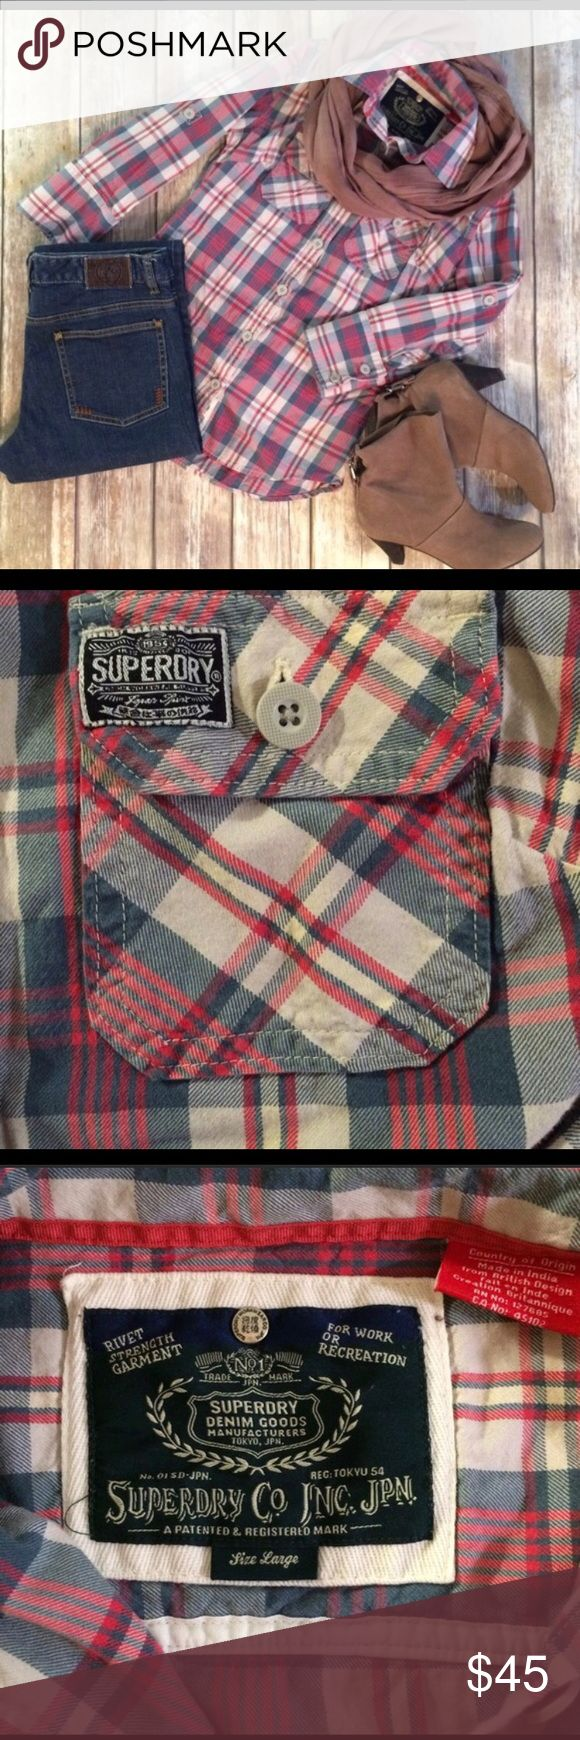 Superdry Plaid Shirt This shirt is in great condition. It is super cute! I bought it and was super excited to wear it, but it is too small for me. It says large on the tag, but it fits more like a small/medium. Superdry Tops Button Down Shirts